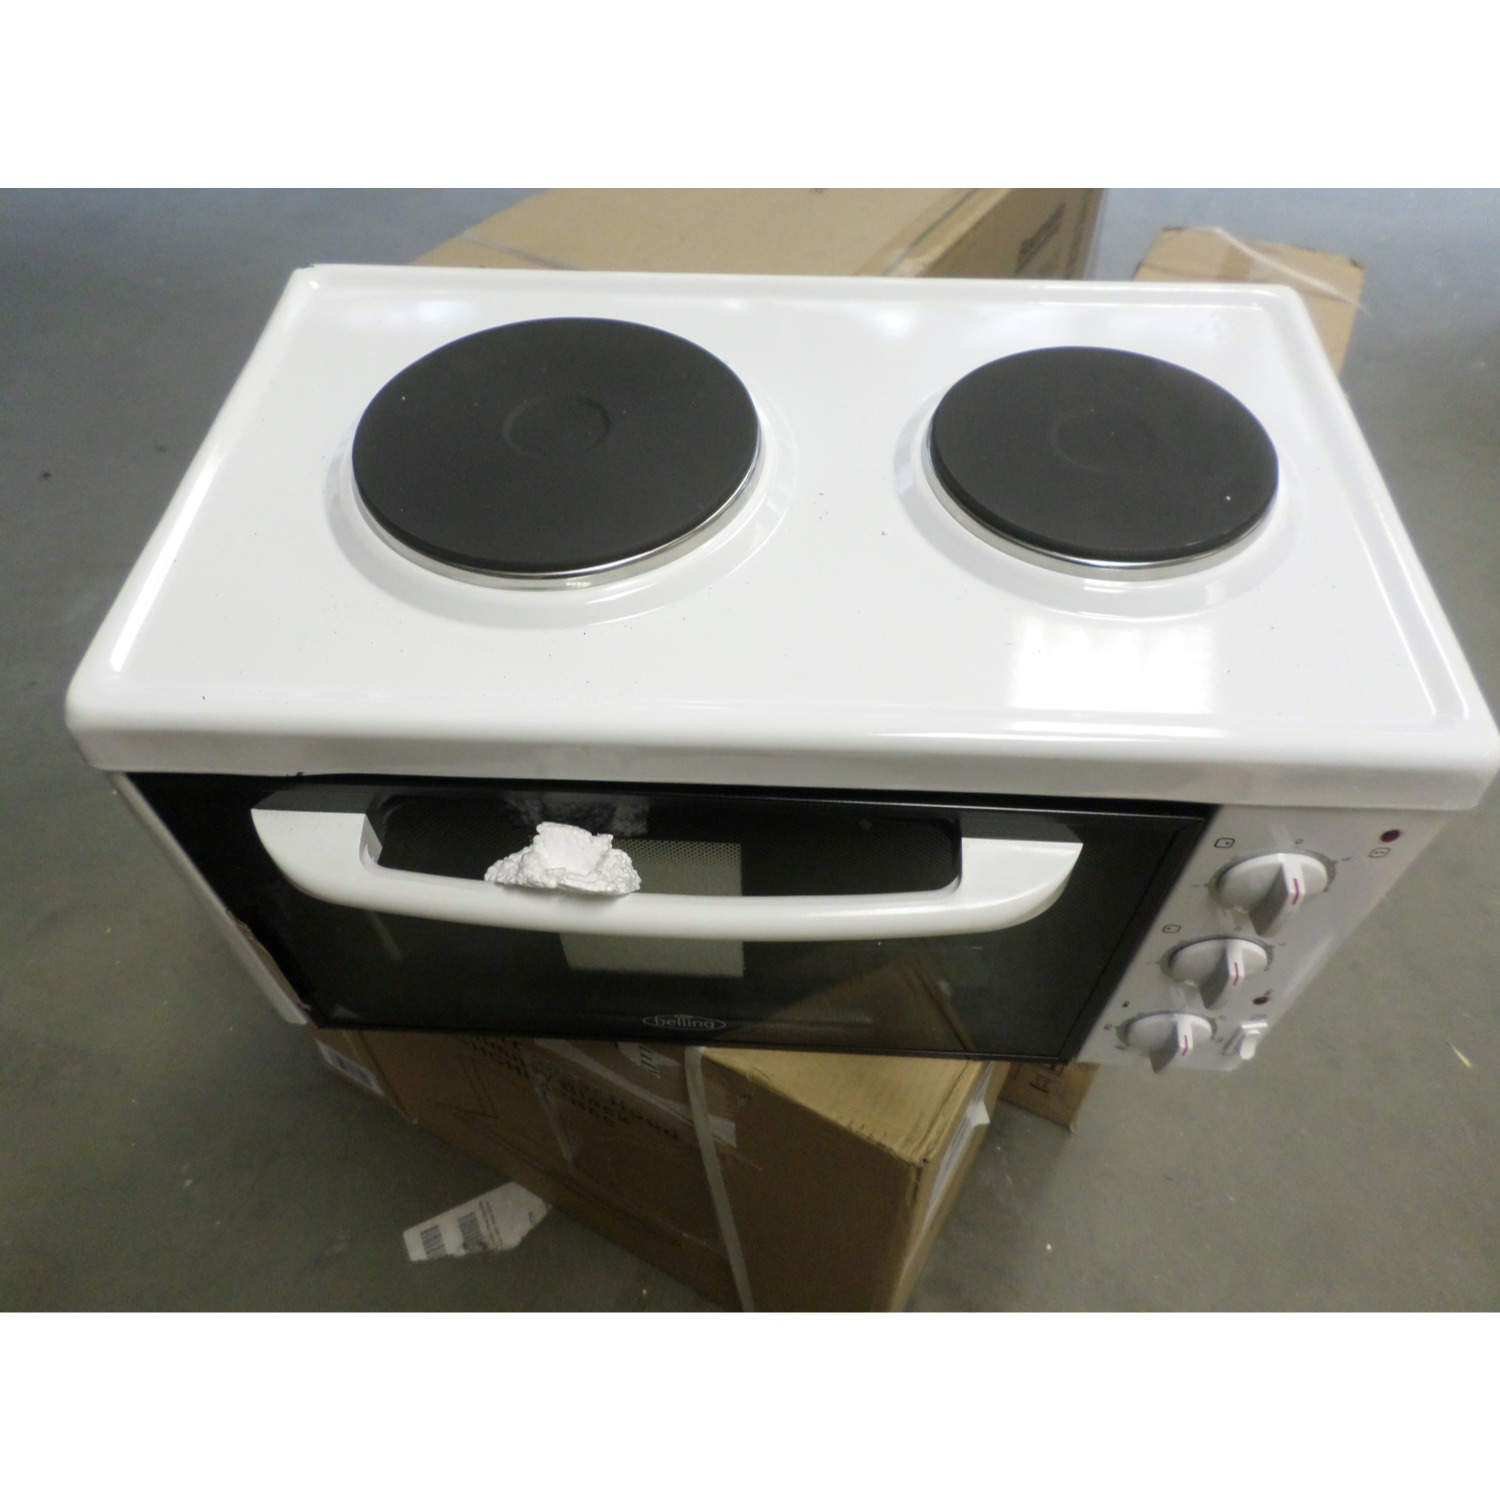 Grade A3 Heavy Cosmetic Damage Baby Belling Mk318 Mini Kitchen Cooker With Sealed Plate Hob White 77210837 1 444442306 Appliances Direct